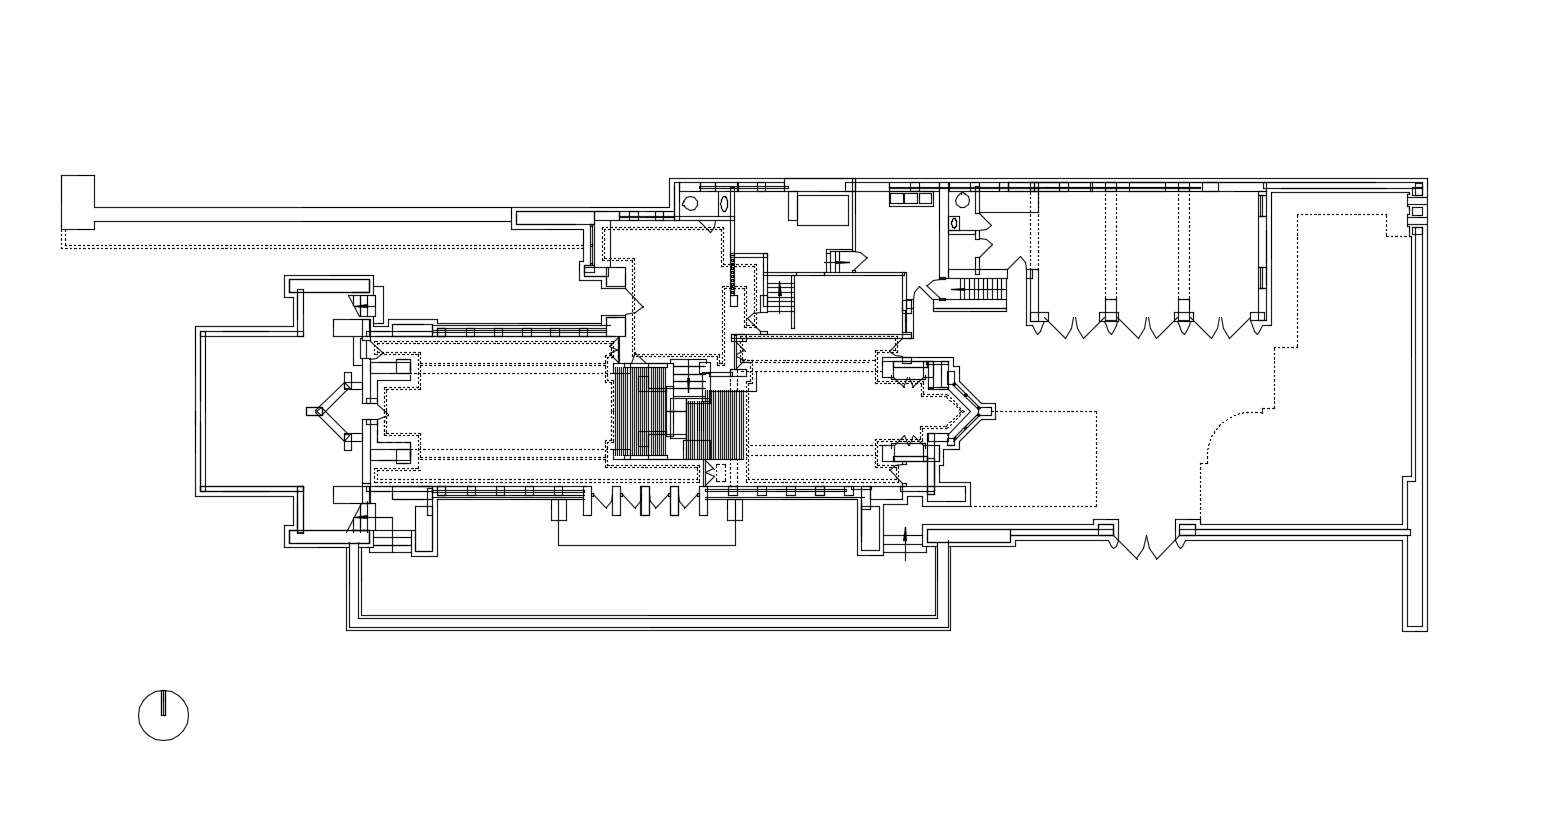 Frank lloyd wright robie house posted by cad blocks 🔍 1 99